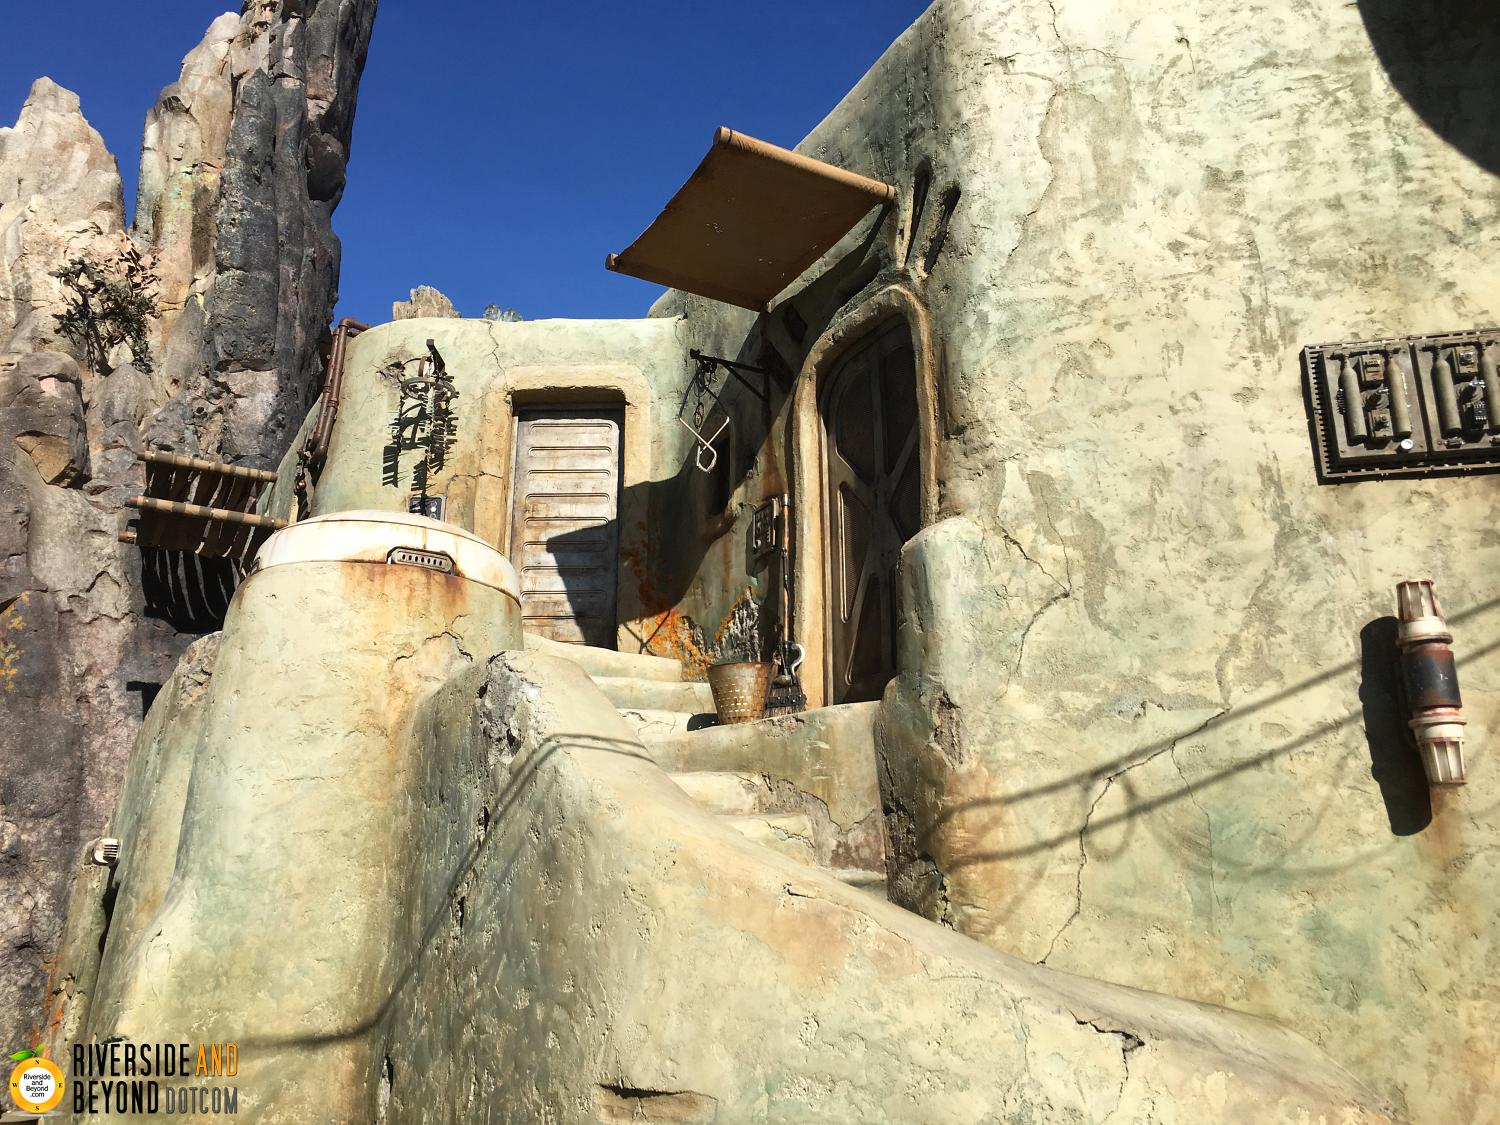 Star Wars land at Disneyland.